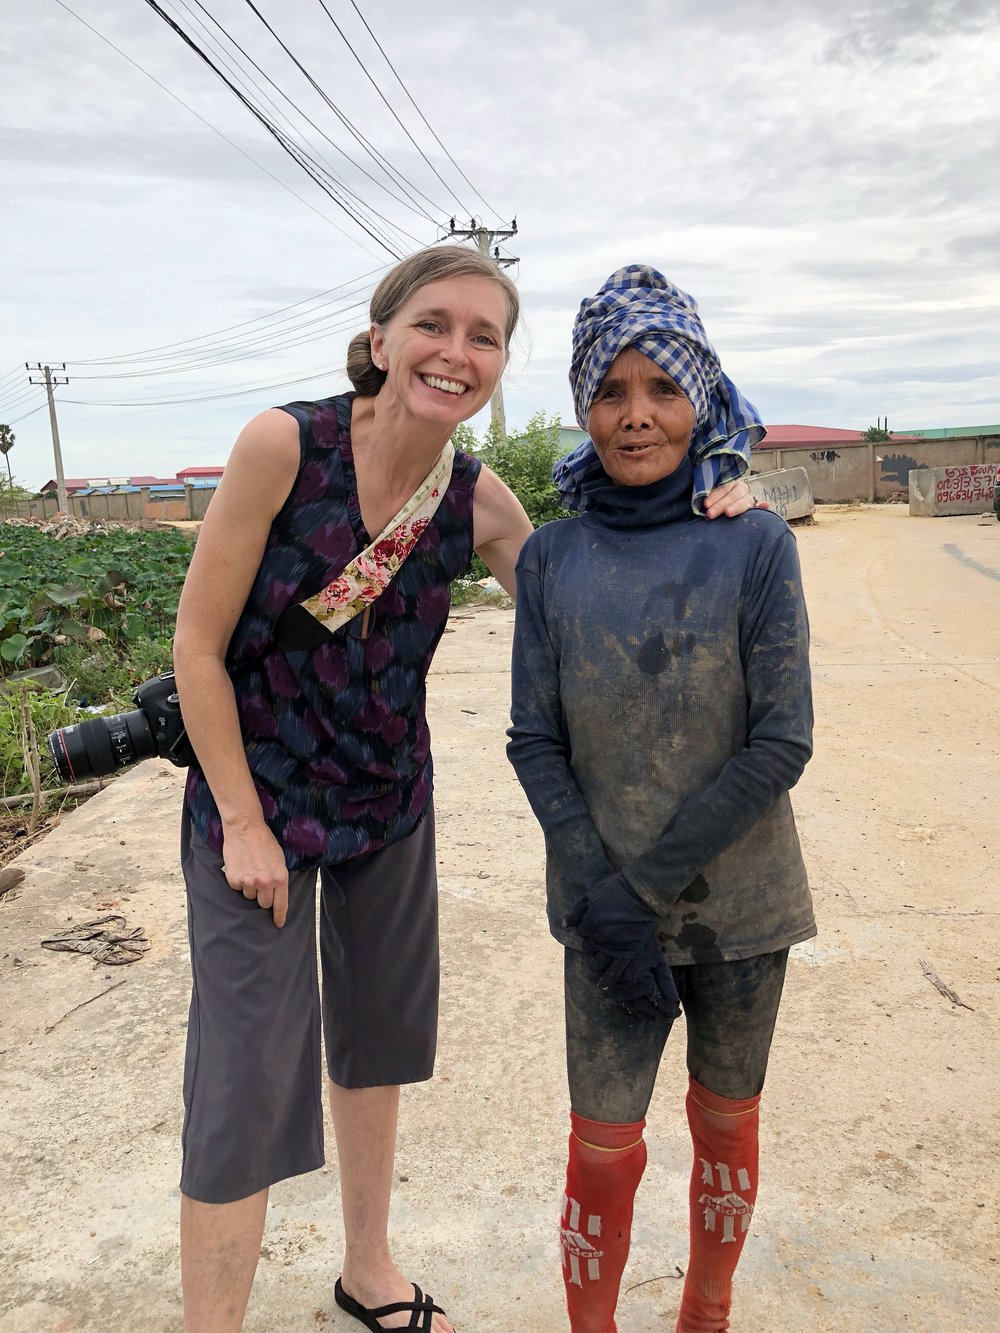 """Kirsten with Srey Nher, one of the first women photographed for the project. When asked what her hope for the future is she said she didn't have hope as she is """"old and poor."""" Kirsten asked if she knew Jesus and Srey Nher said, """"Yes, I've heard but I don't see how that (He) can help."""" We are thankful for this open door for sharing the hope we have in Christ, and pray that the relationship with this woman and her husband (who is 98 (!!) and was also photographed for the project) will grow. Pray for this sweet couple. We feel blessed to have met them and feel they are among those that the Lord desires for us to serve in practical ways."""